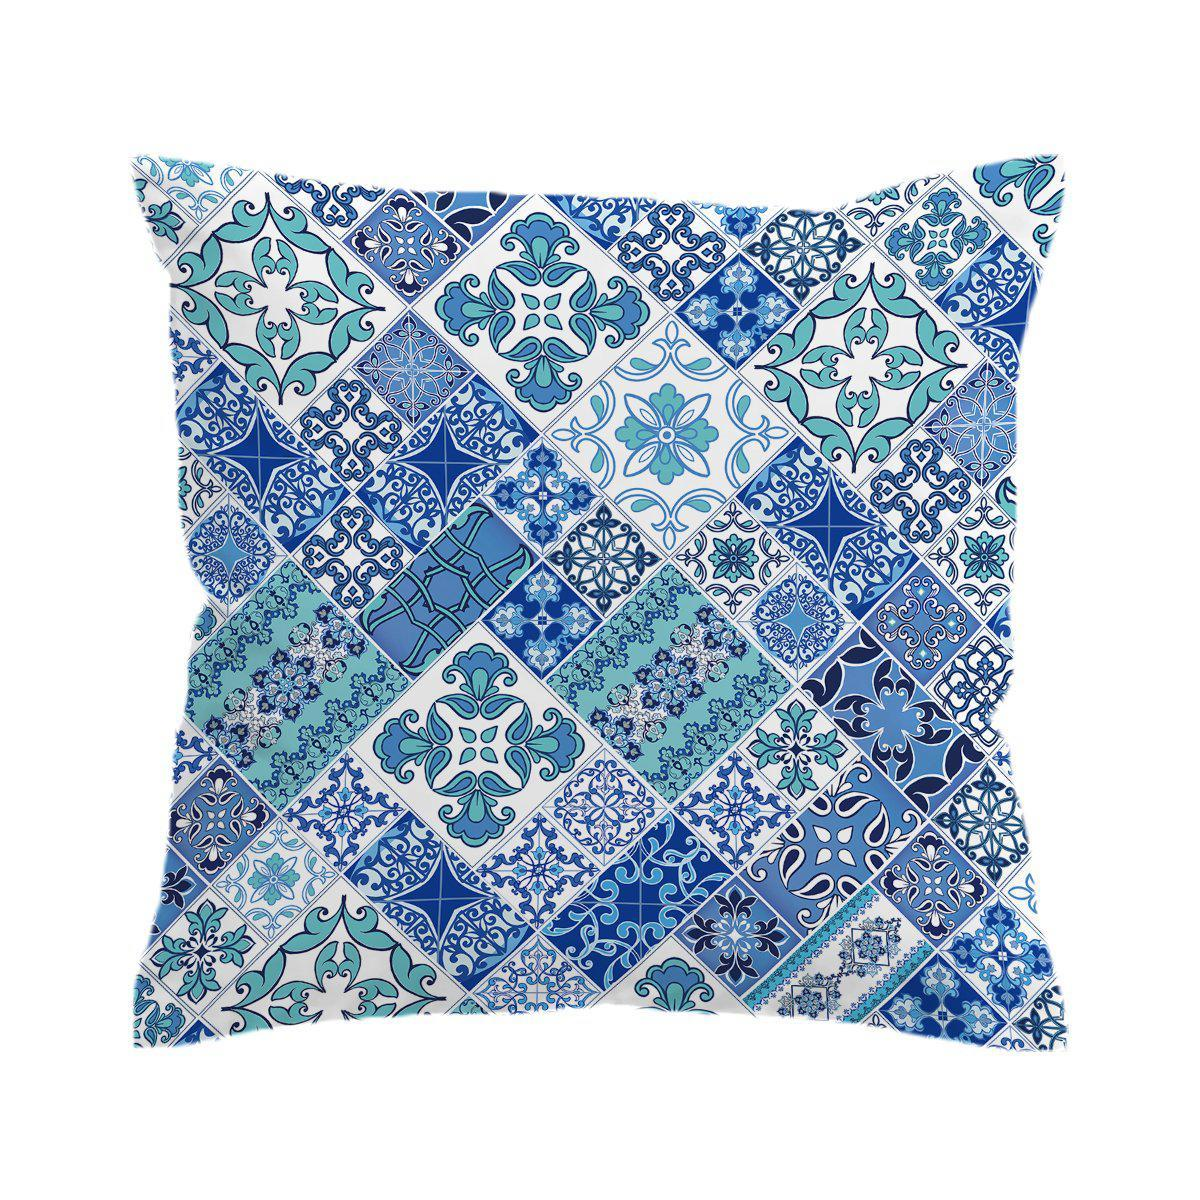 Coastal Mosaic Pillow Cover-Coastal Passion